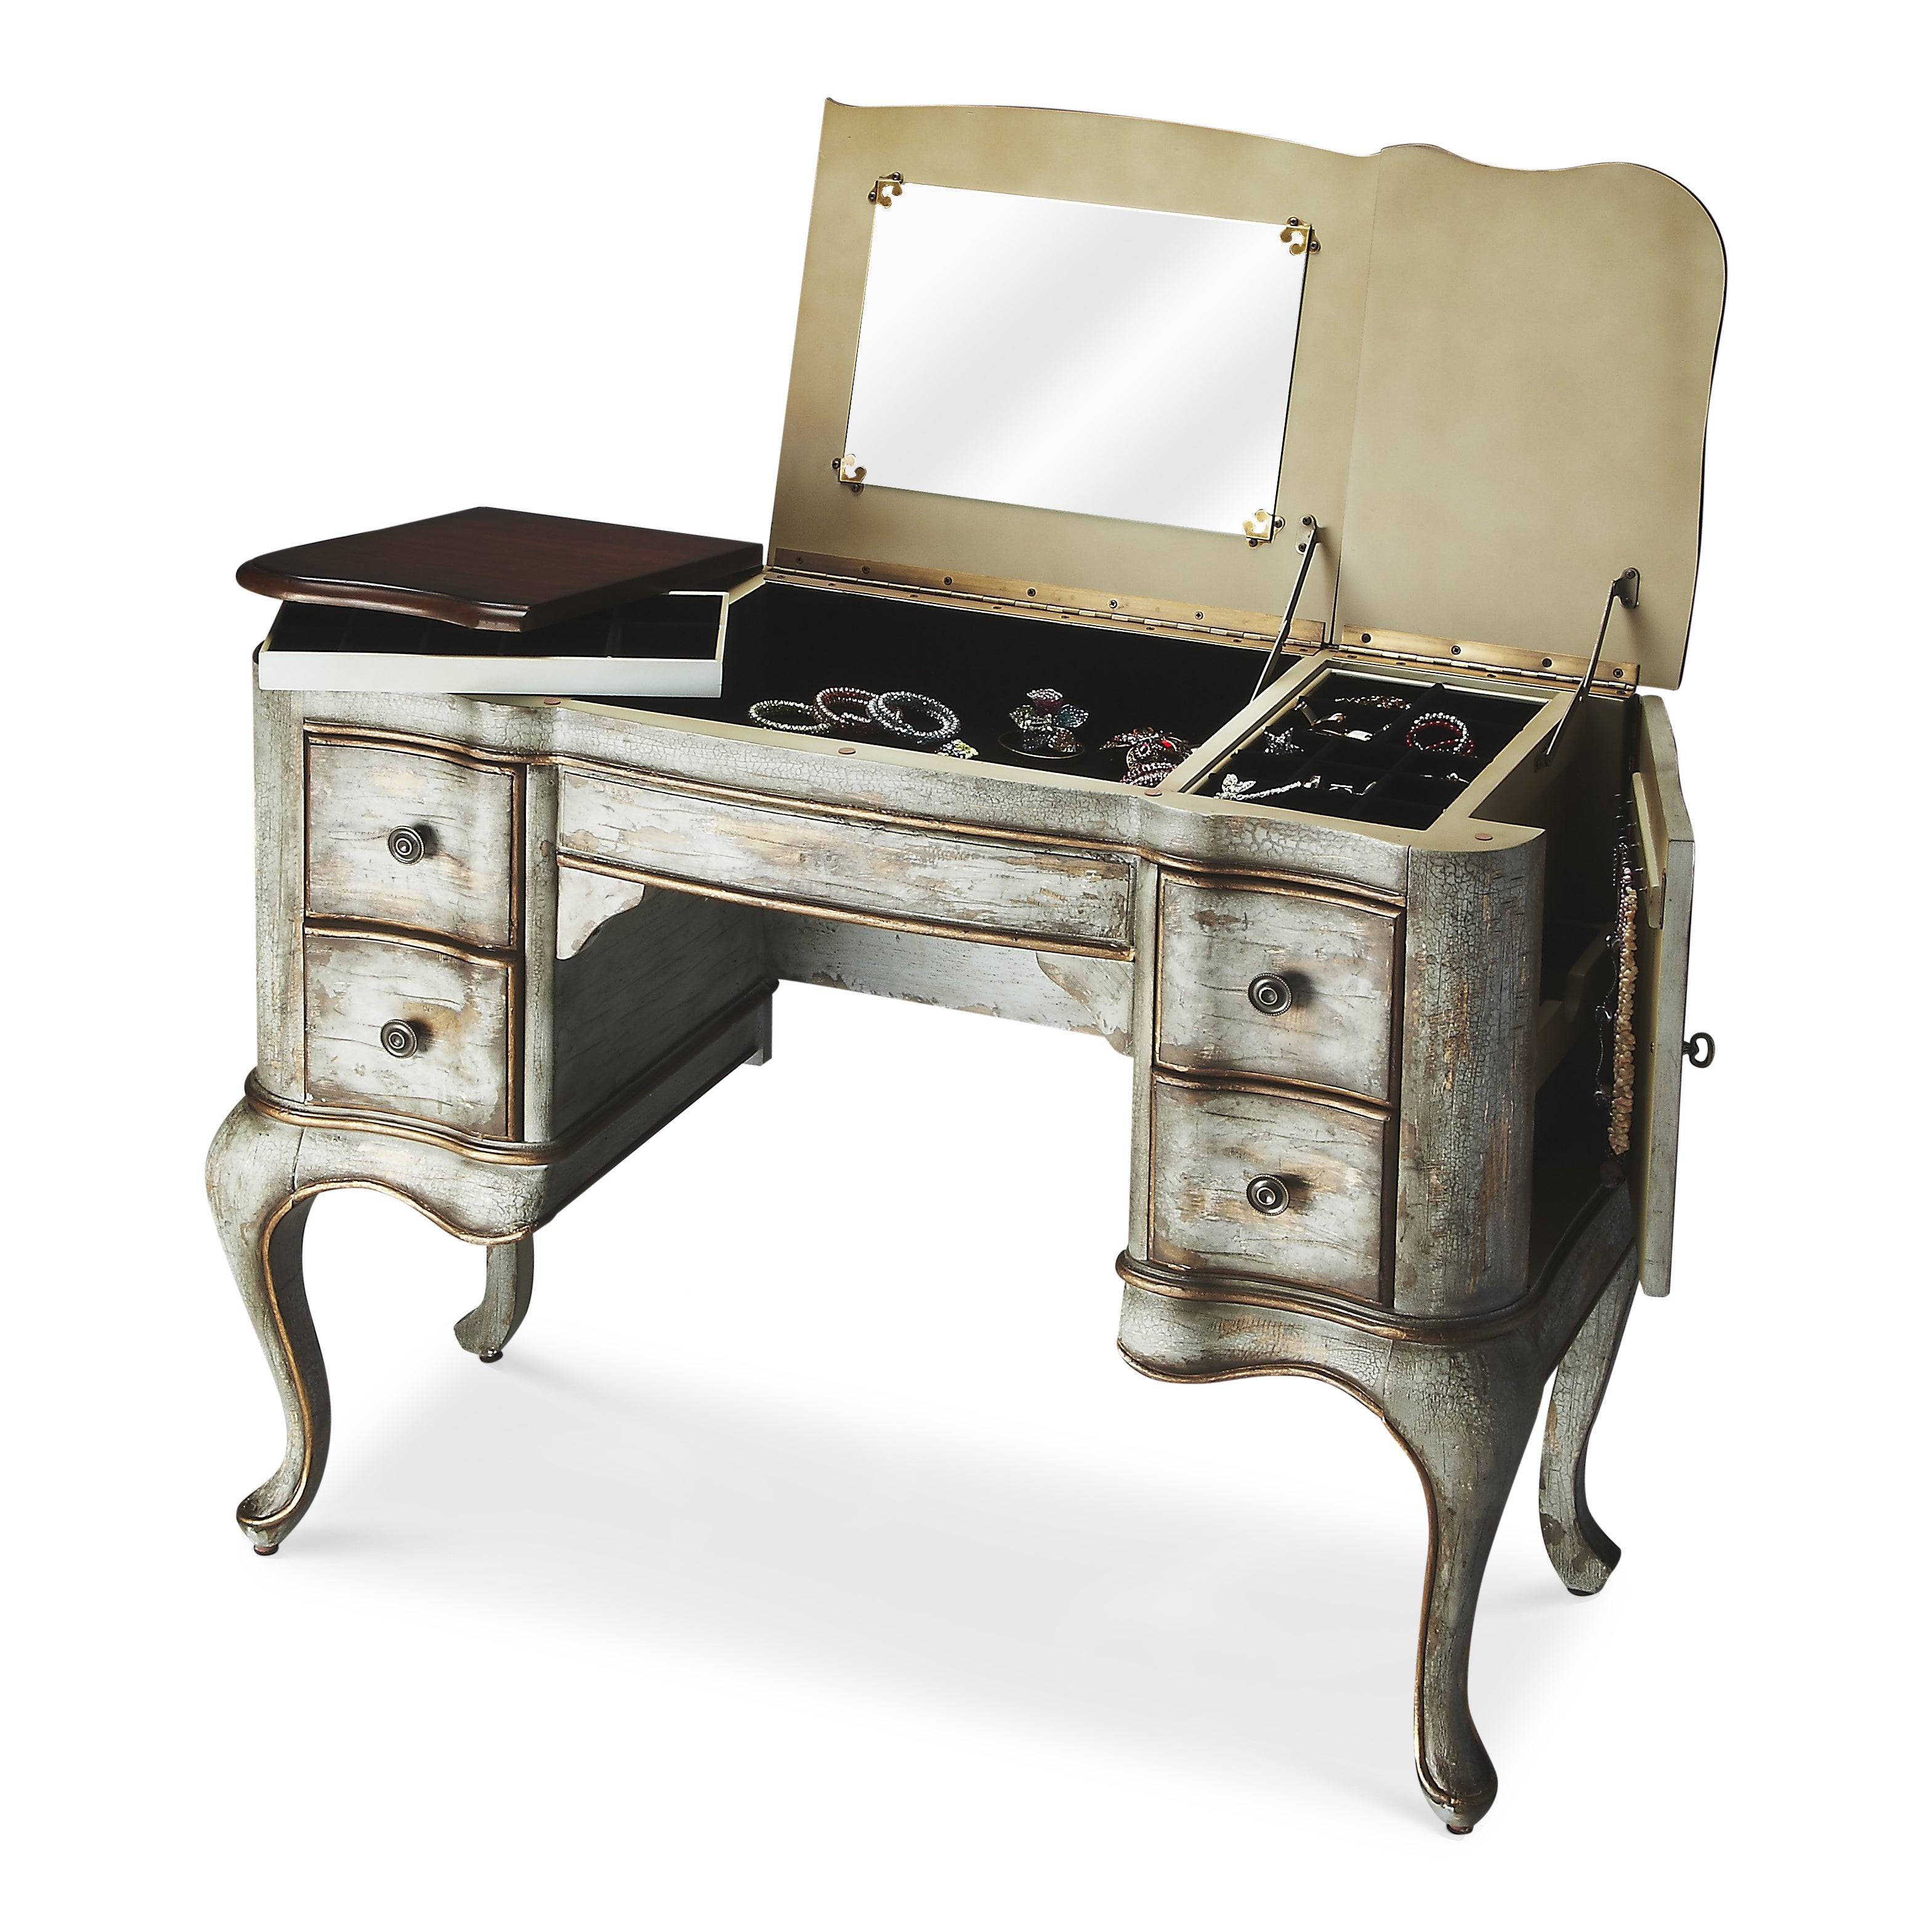 Rustic Blue Vanity/ Dressing Table at Sears.com